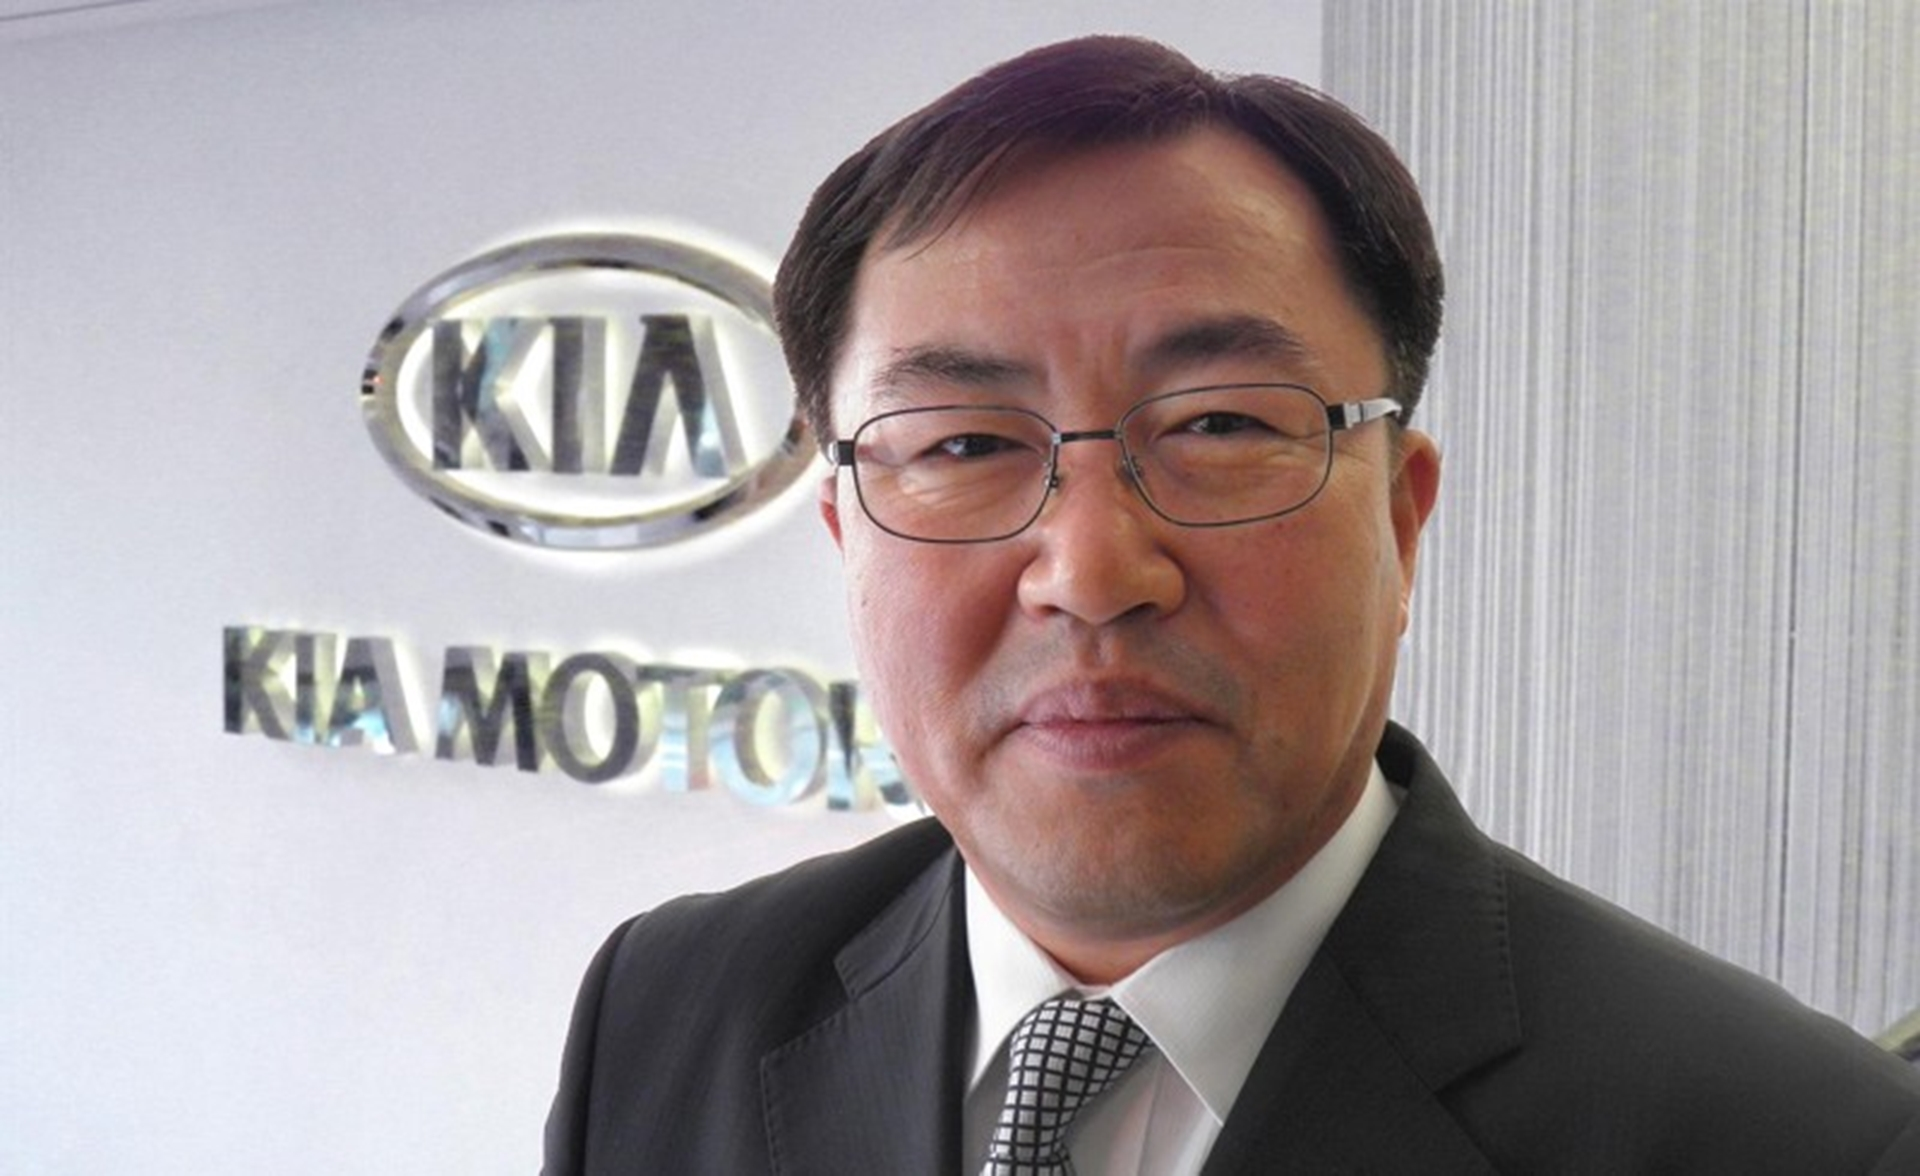 New President Kia Motors Europe